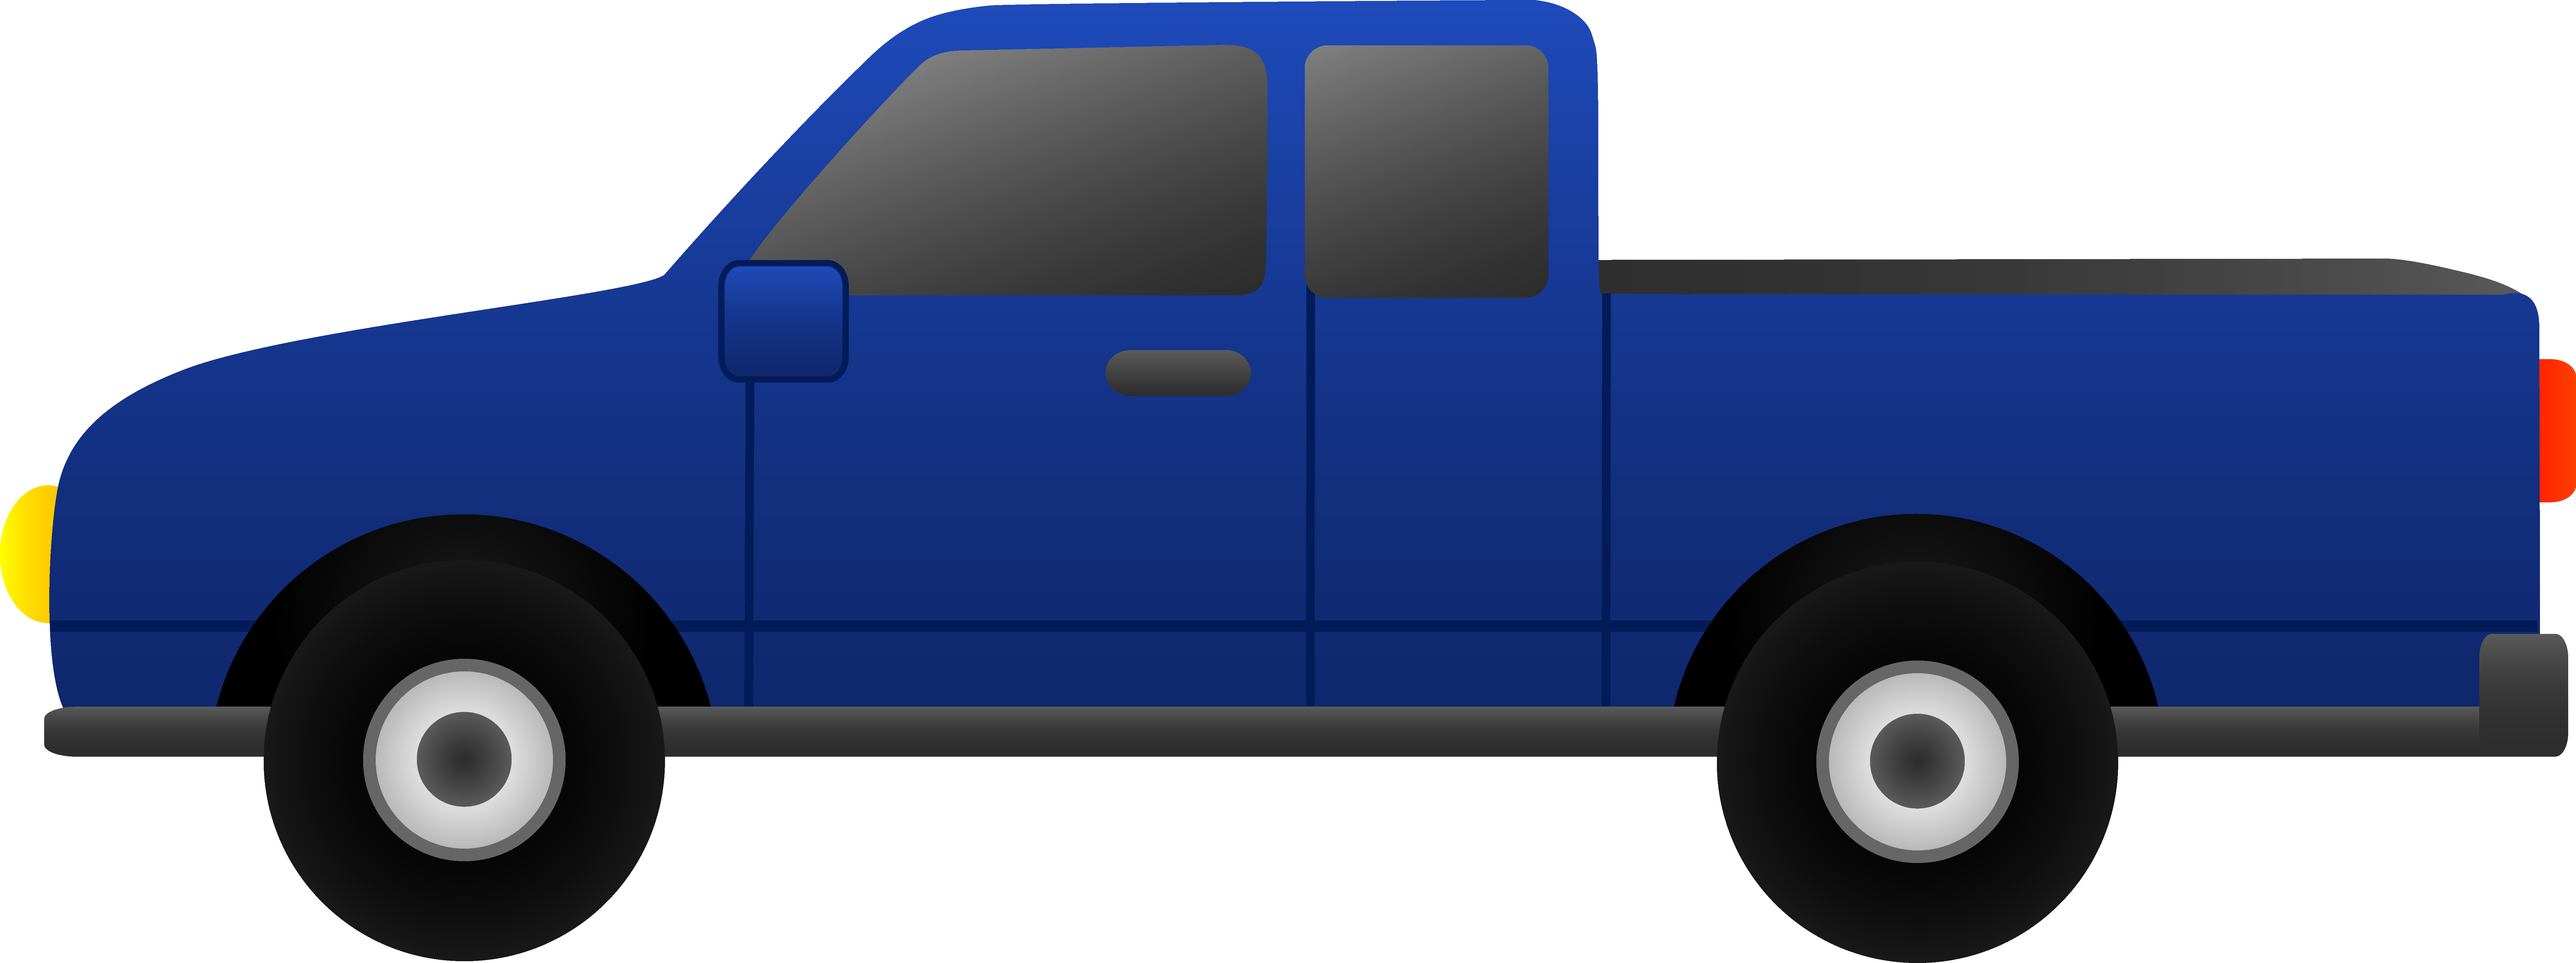 Toyota Pickup Truck Clipart | Clipart Panda - Free Clipart Images